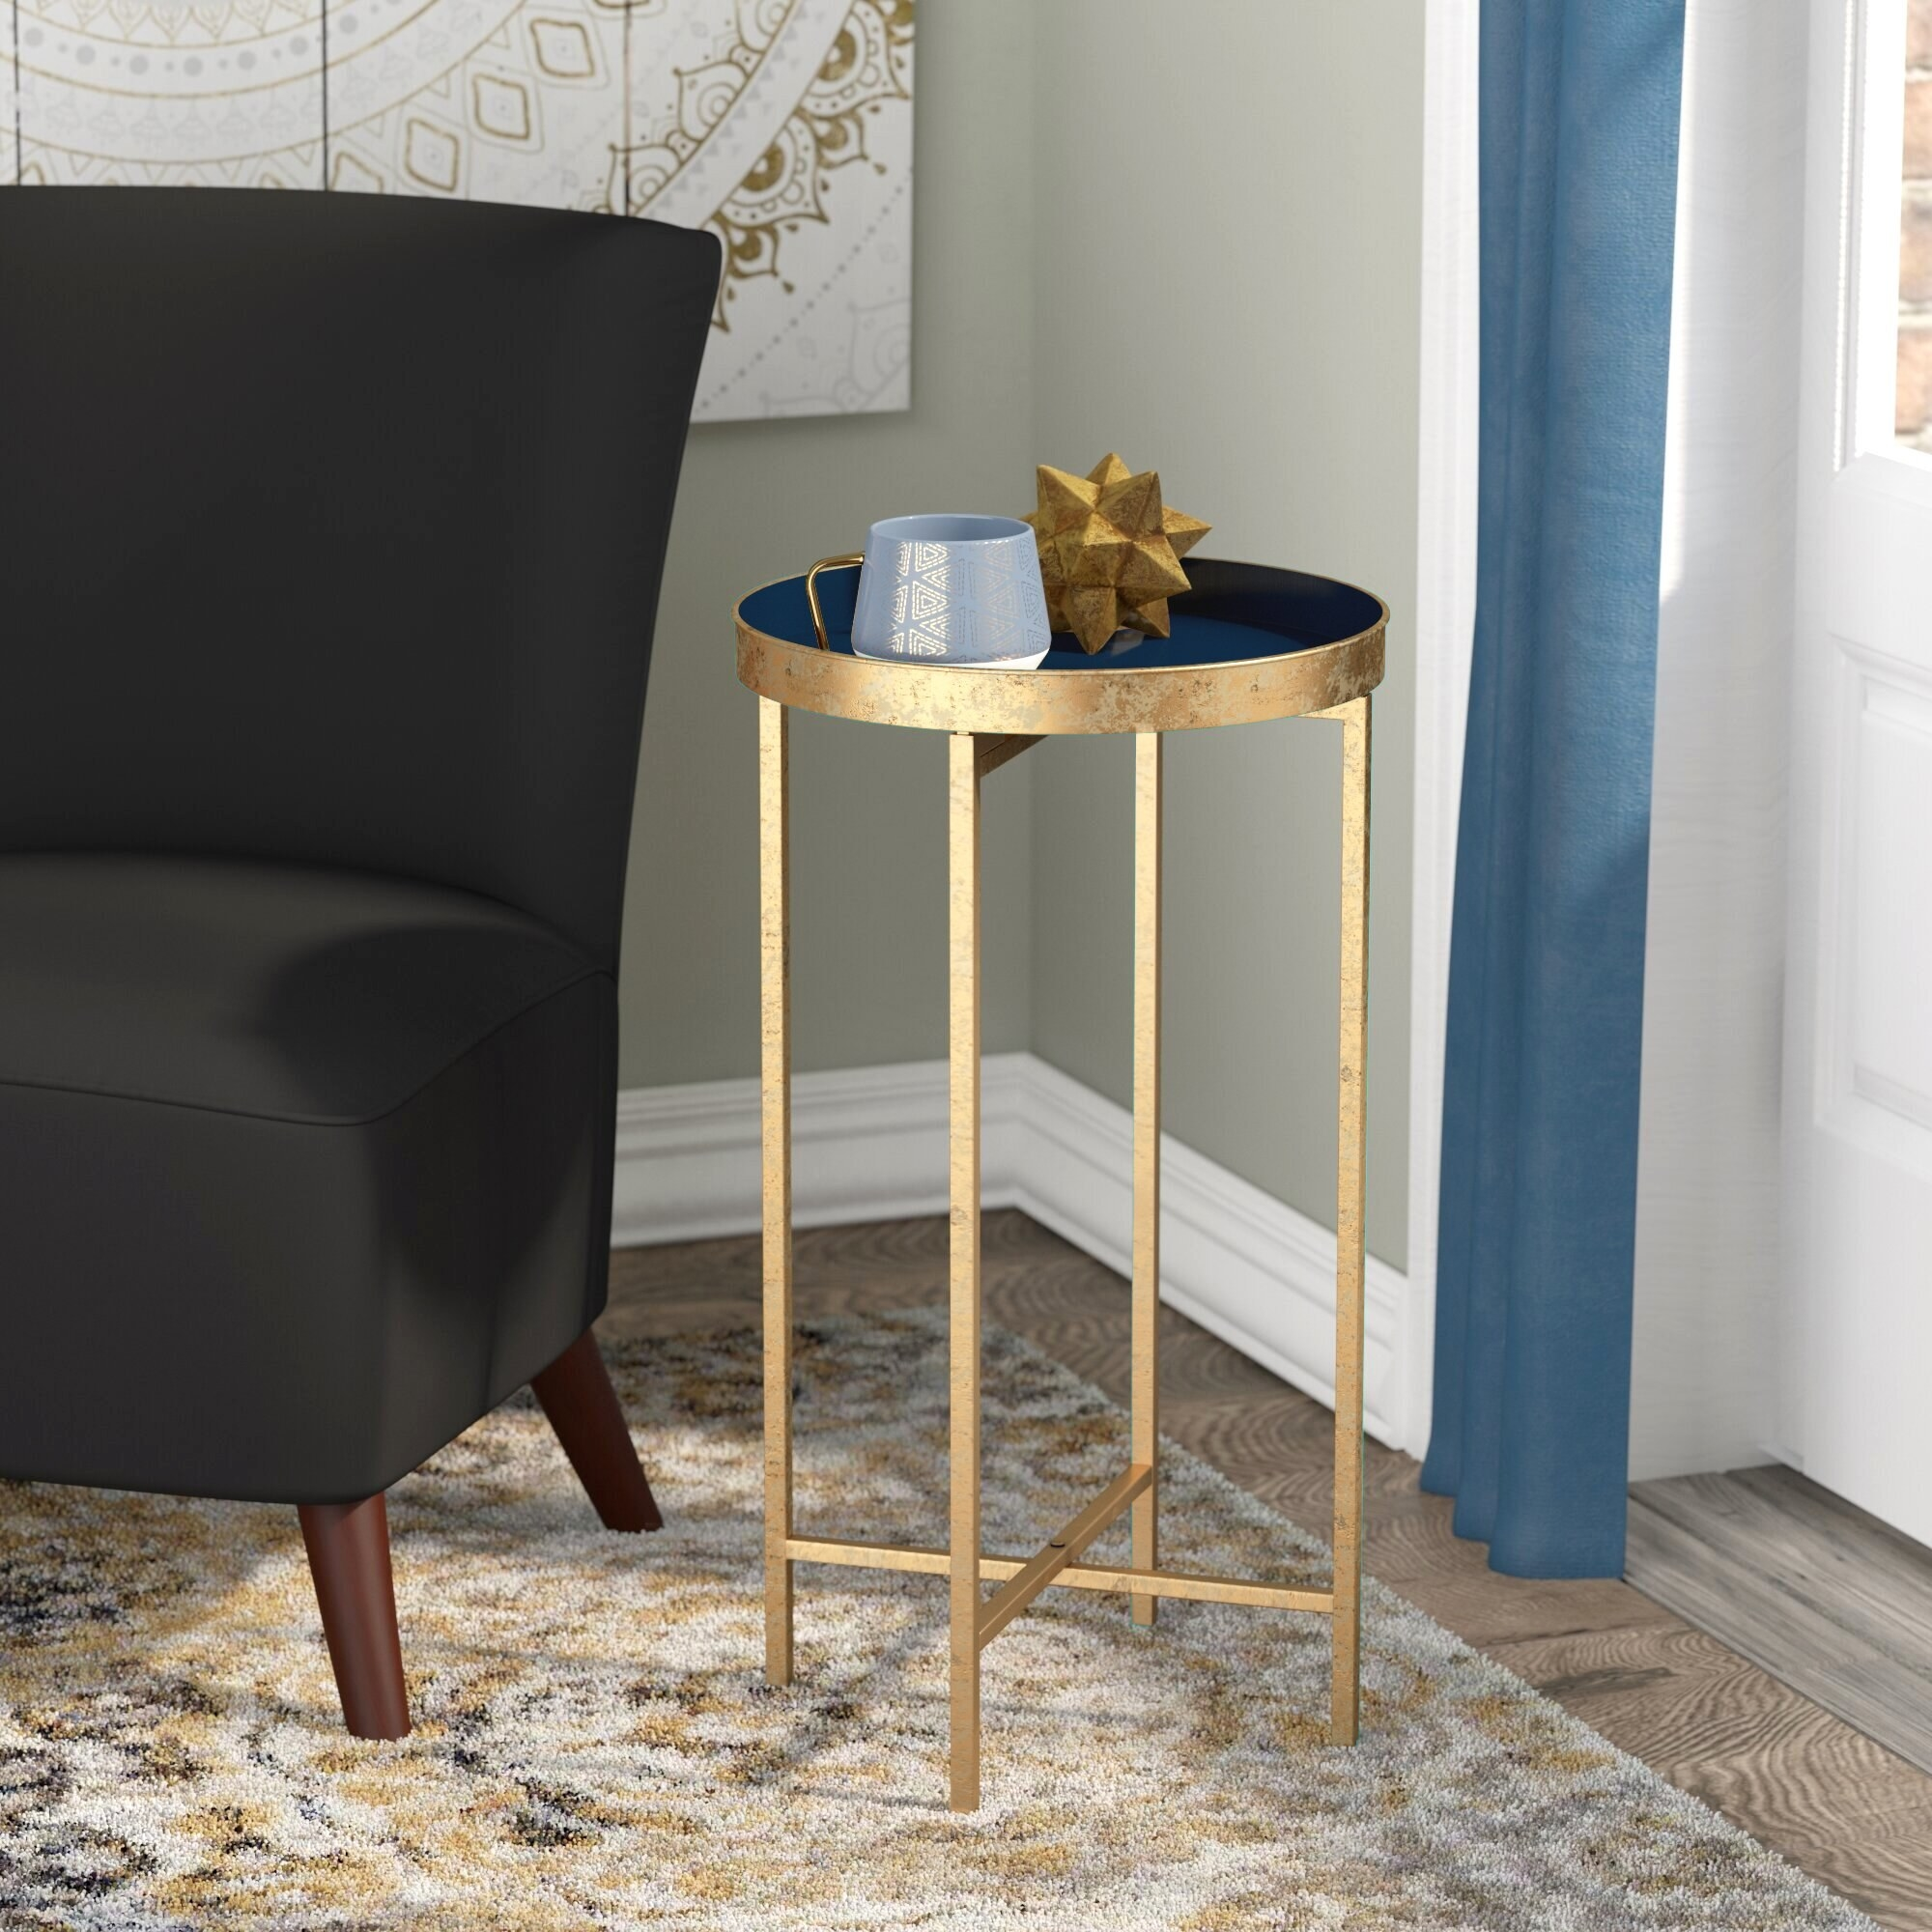 End table staged next to chair.